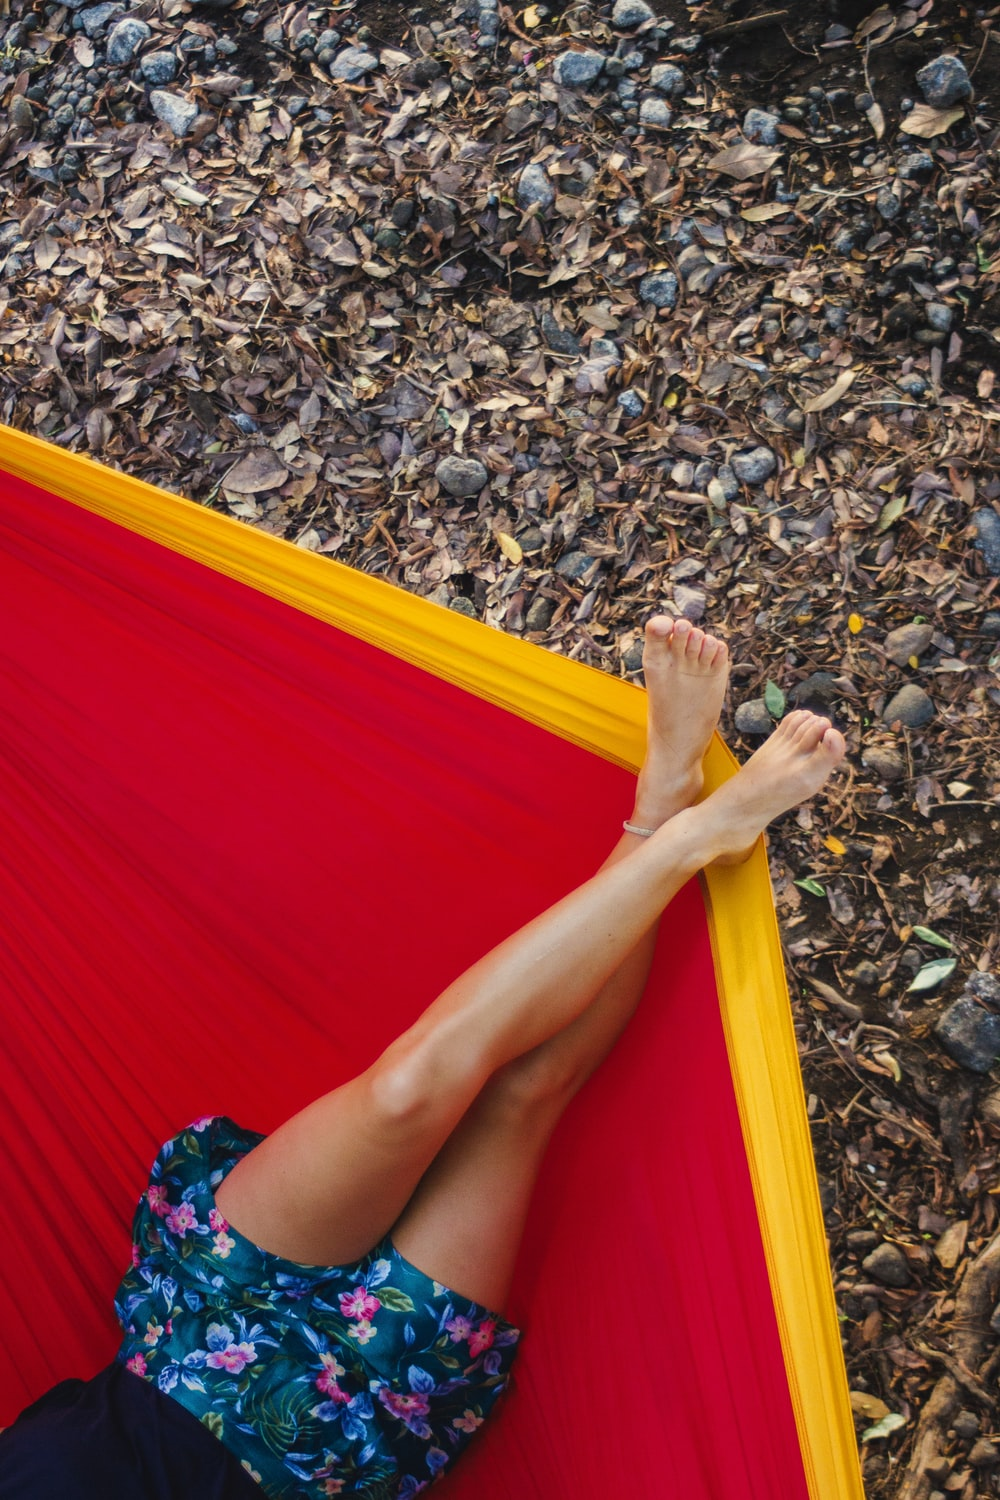 woman in red dress lying on yellow and red hammock